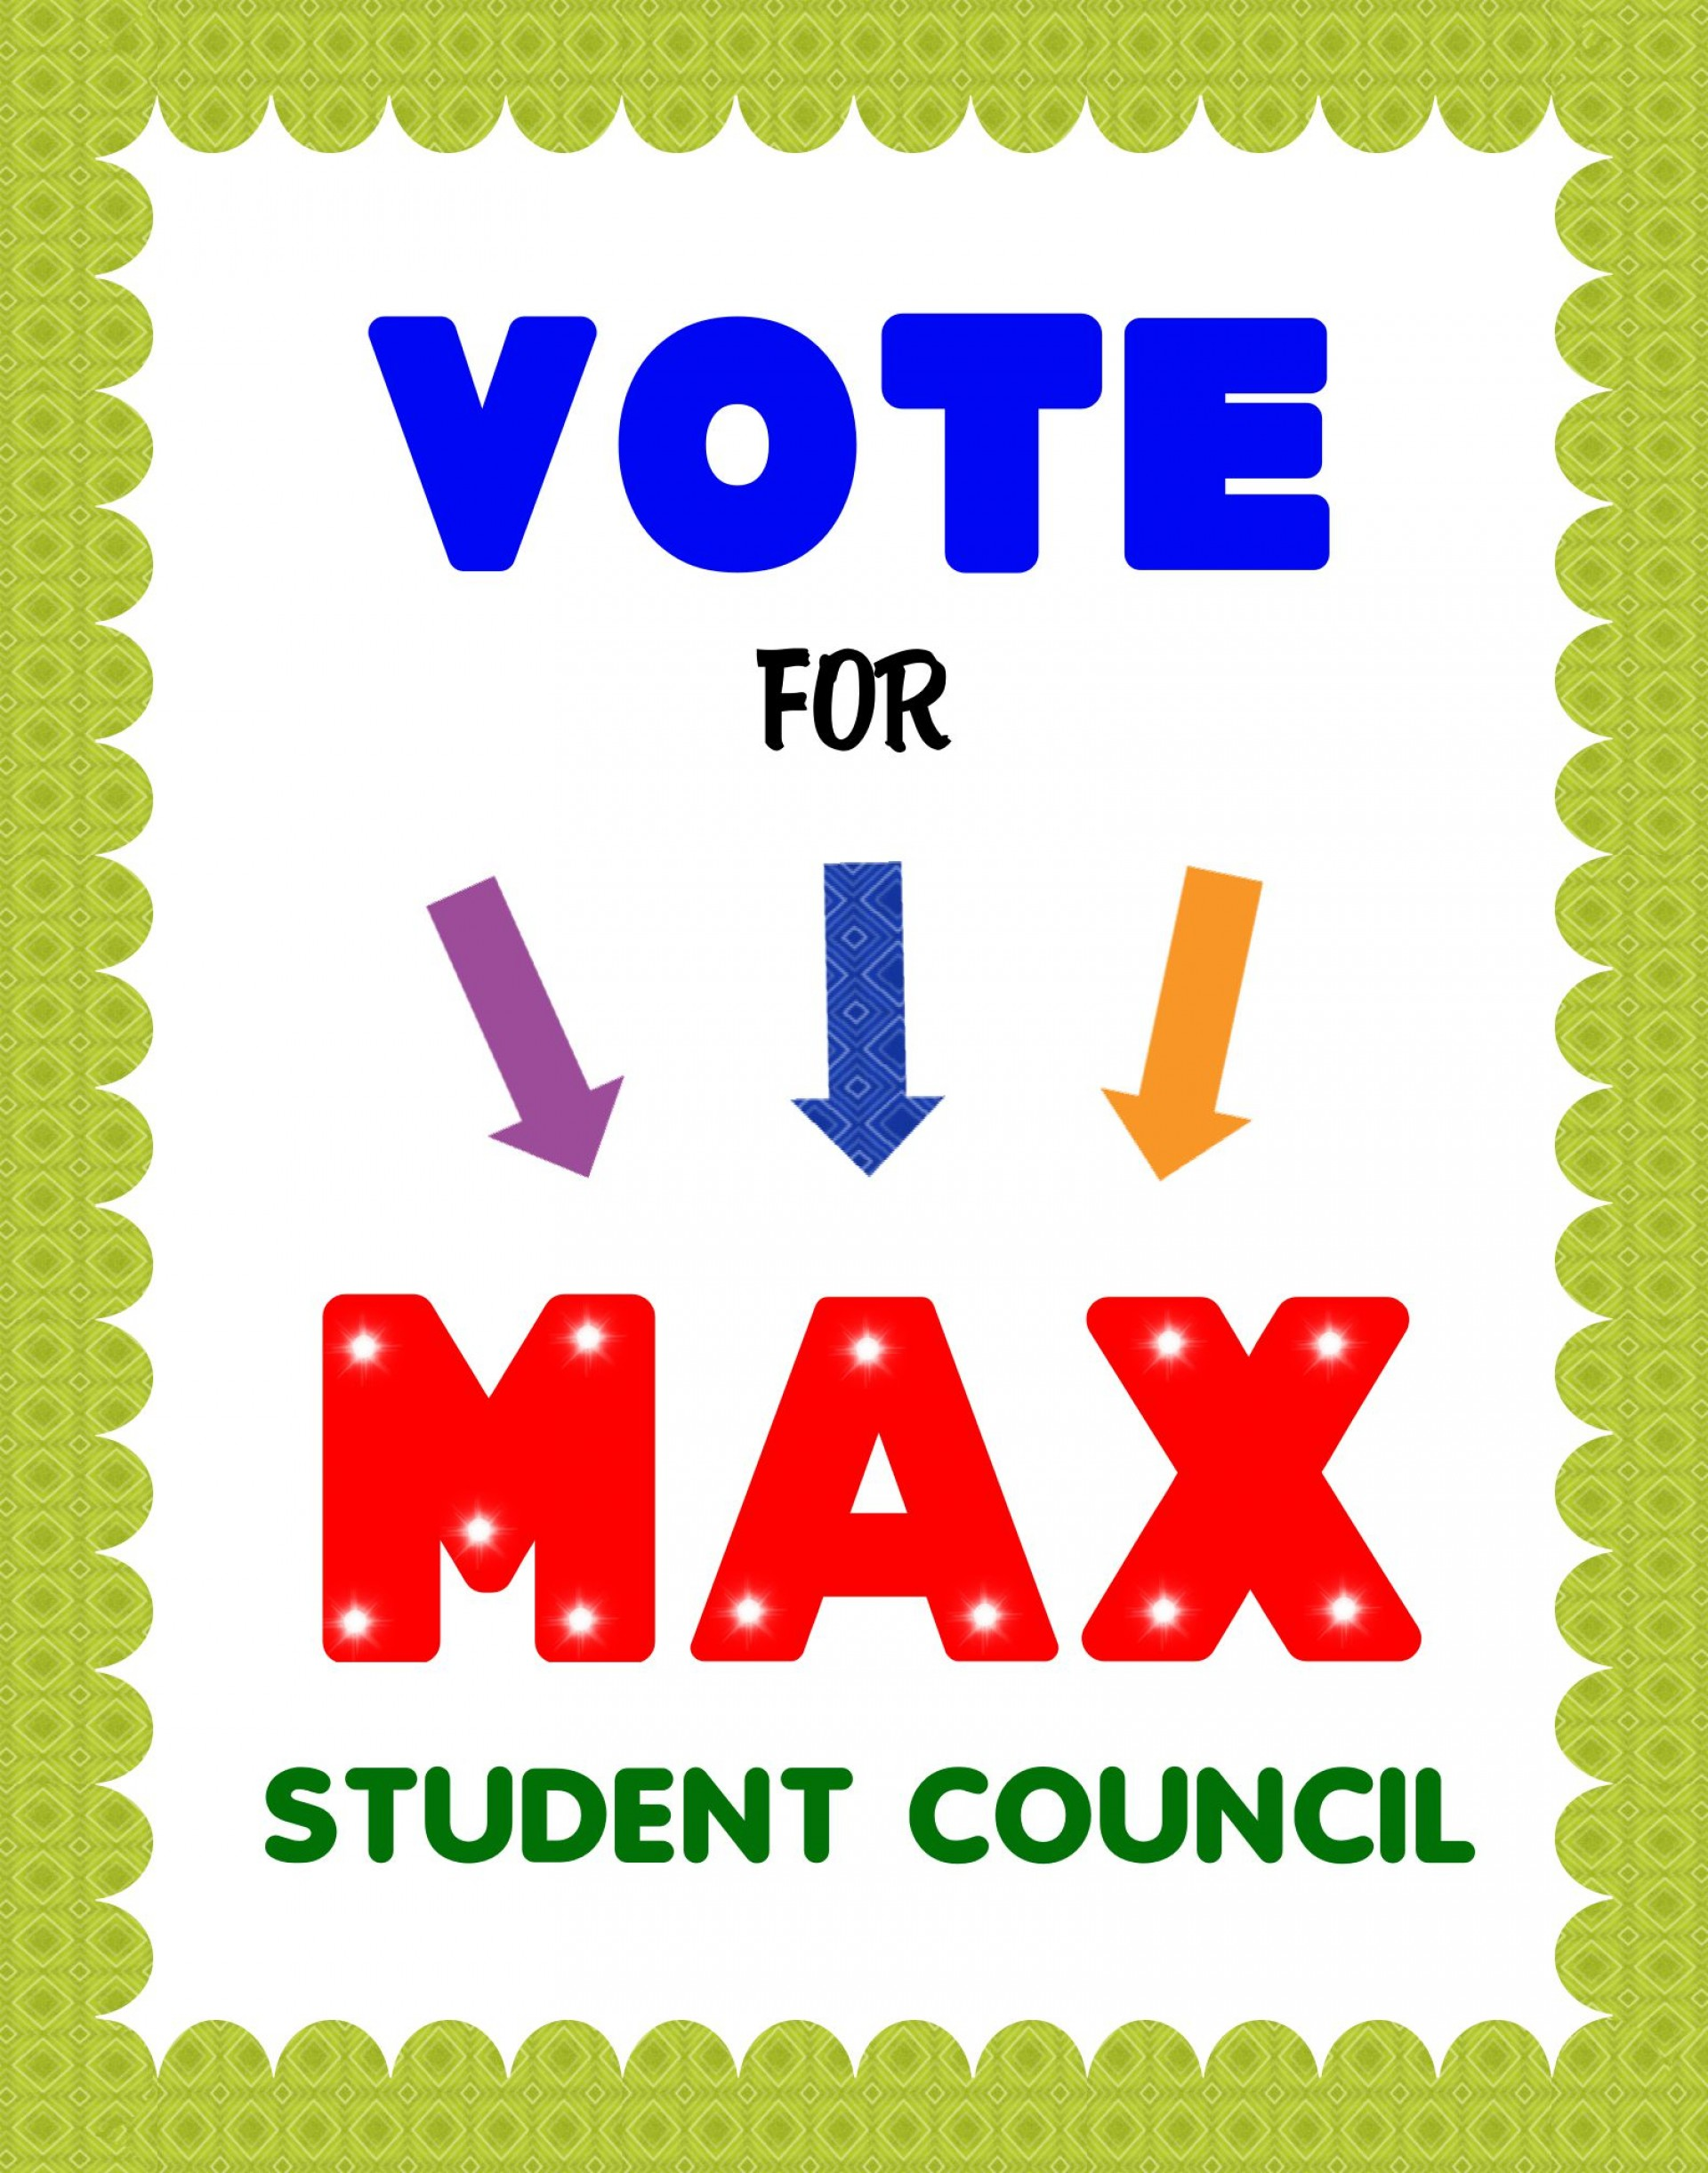 002 Outstanding Free Student Council Campaign Poster Template Sample 1920